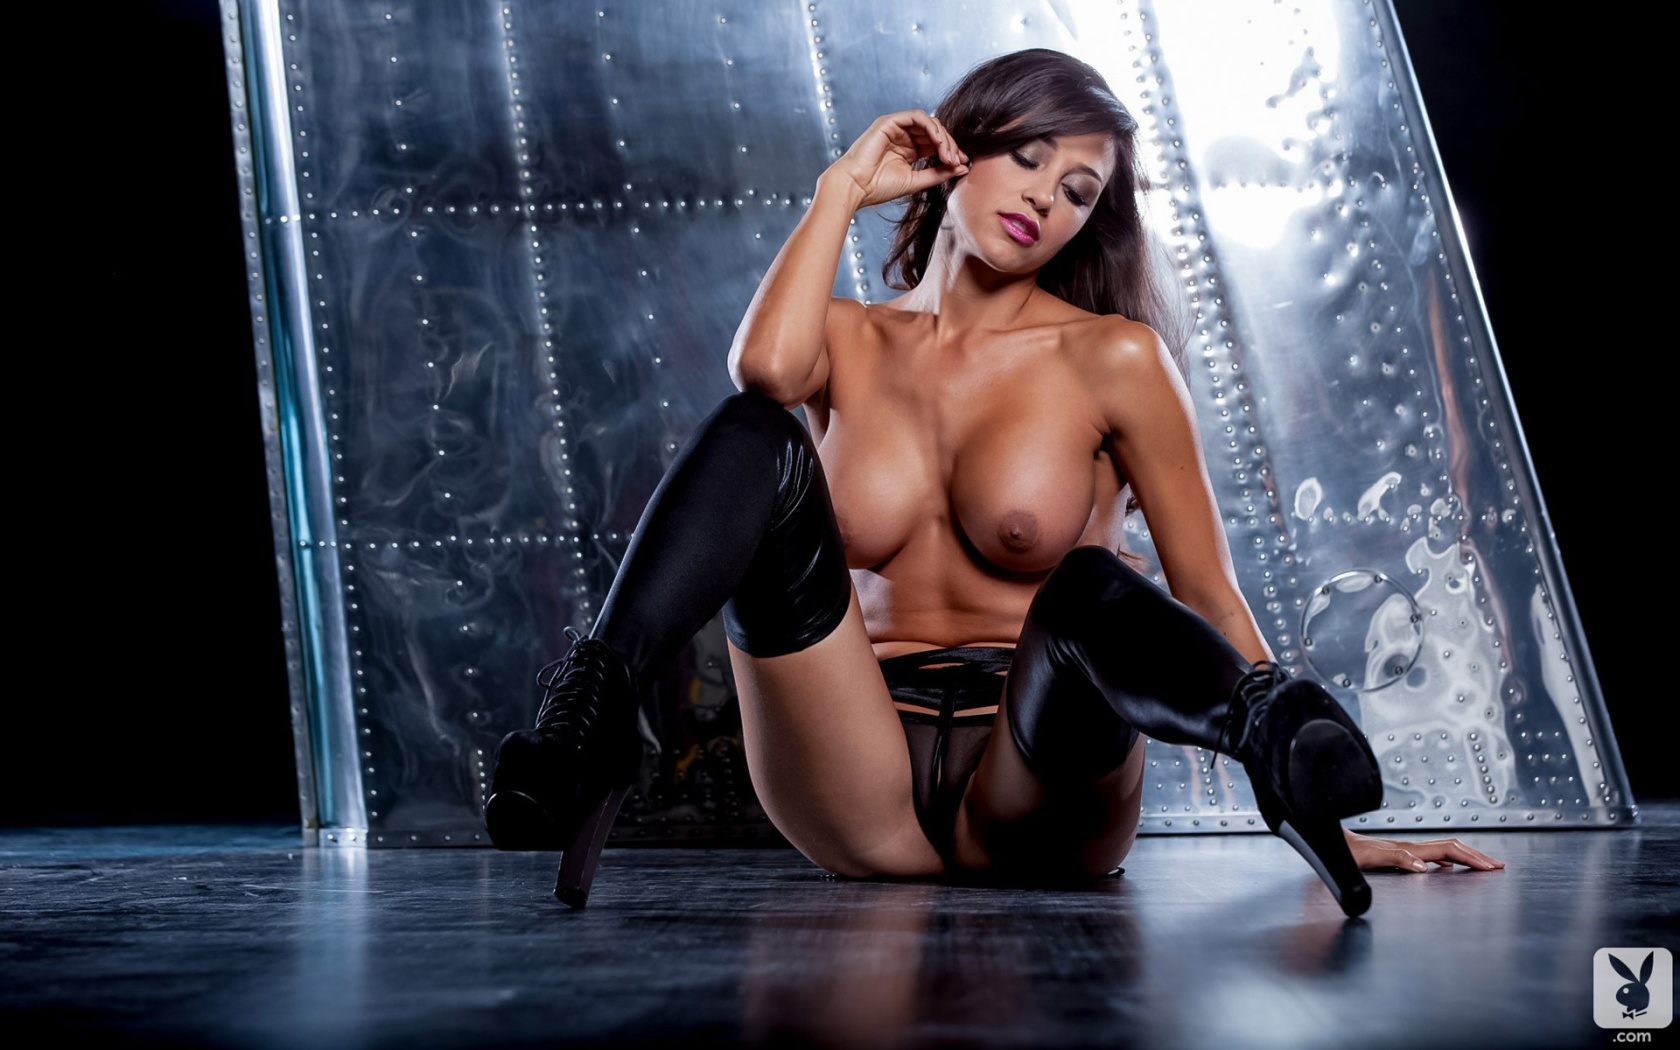 Ana Cheri Nudes ana cheri sexy brunette playmate with a big rack exposes her